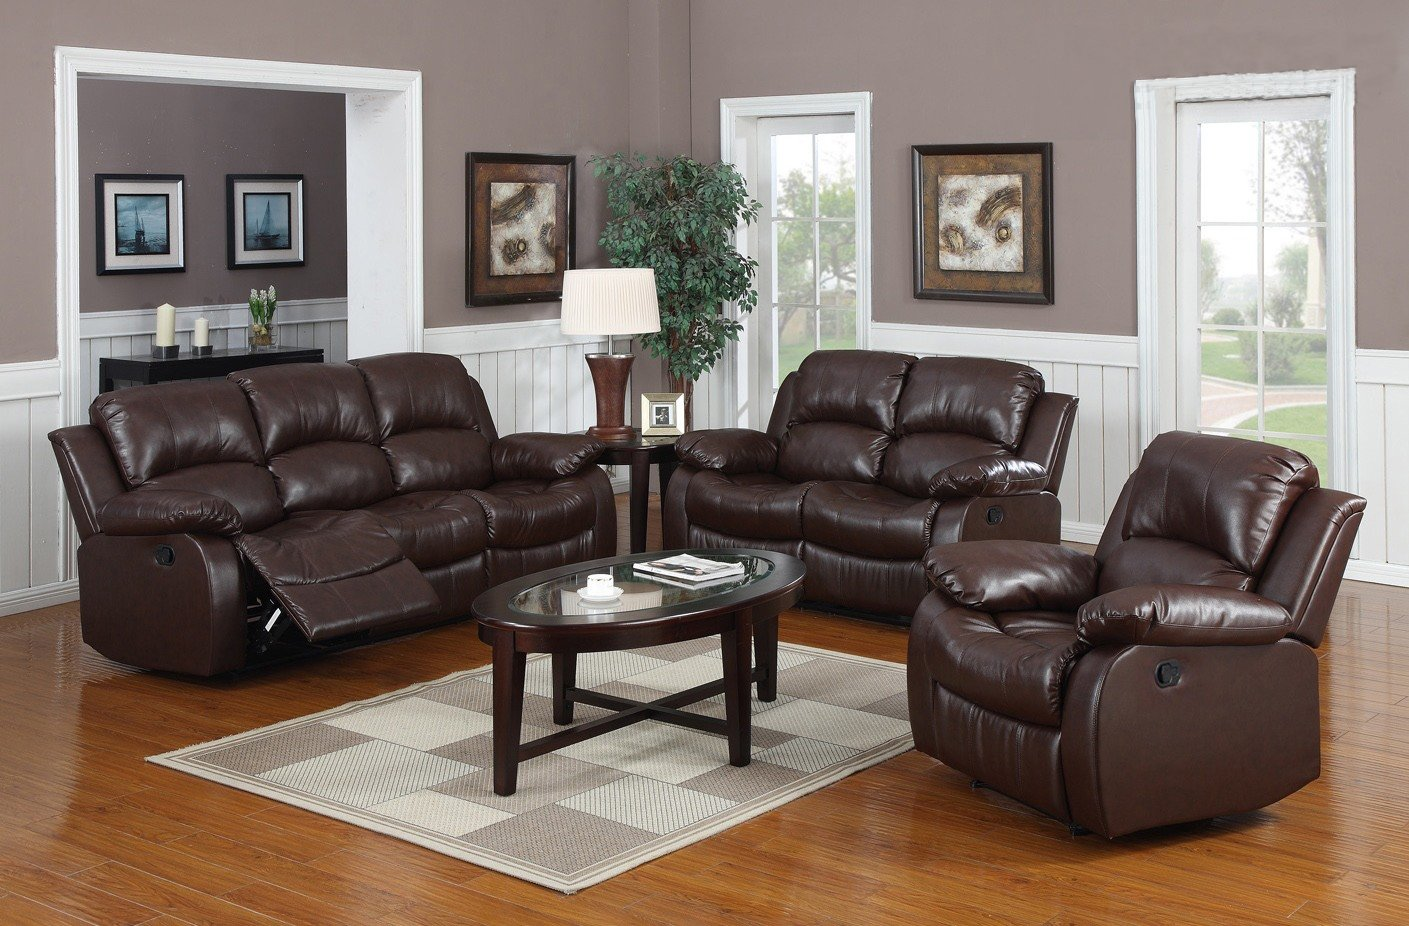 Amazon.com: Huntington 3 Pc Bonded Leather Sofa U0026 Loveseat U0026 Chair Set With  5 Recliners: Kitchen U0026 Dining